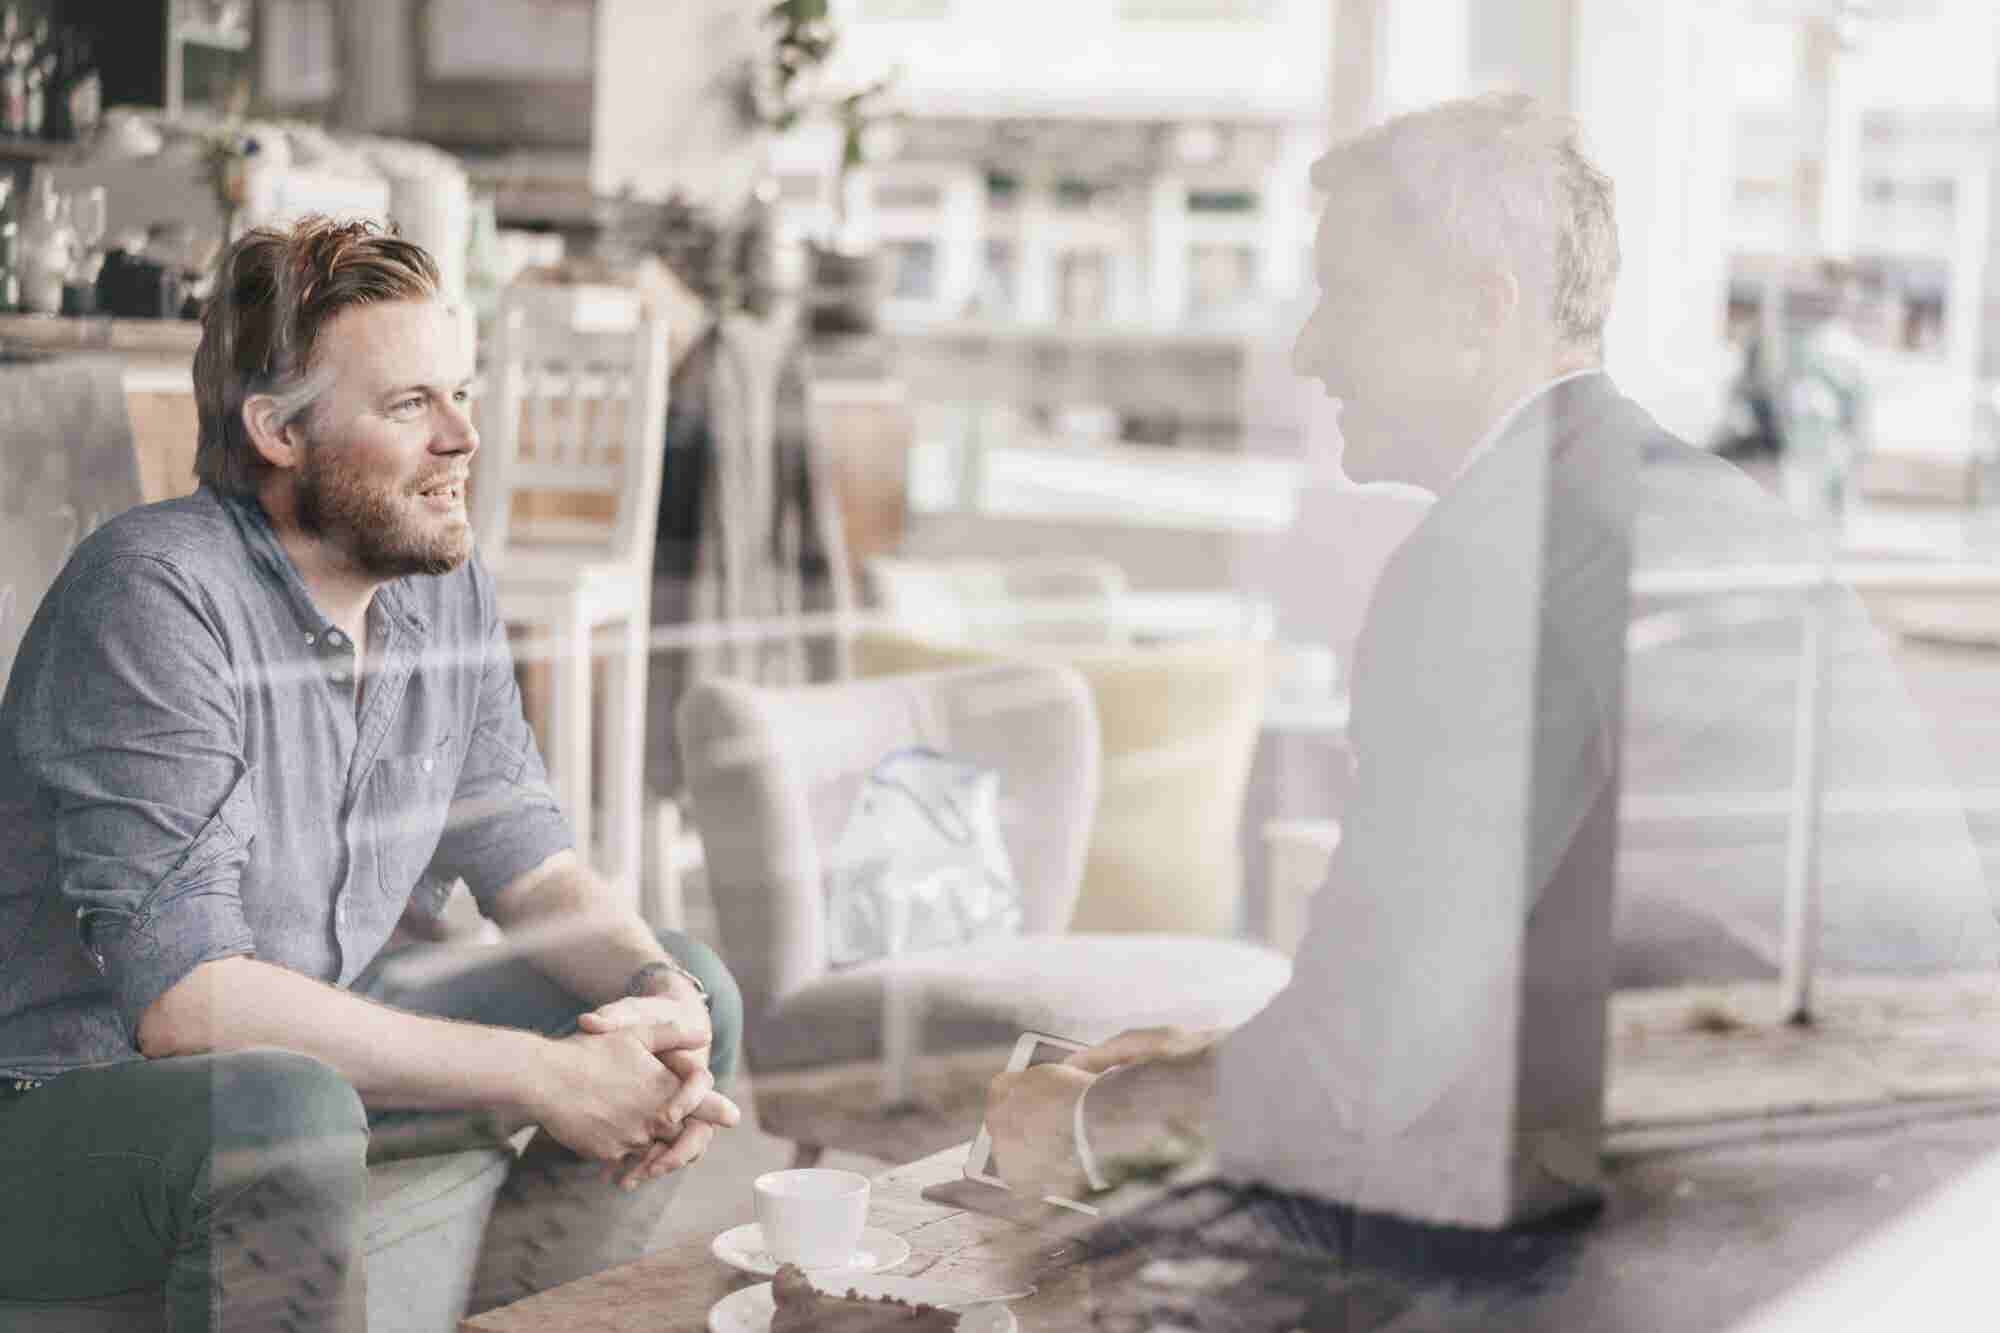 4 Rules to Keep in Mind When Looking for a Mentor